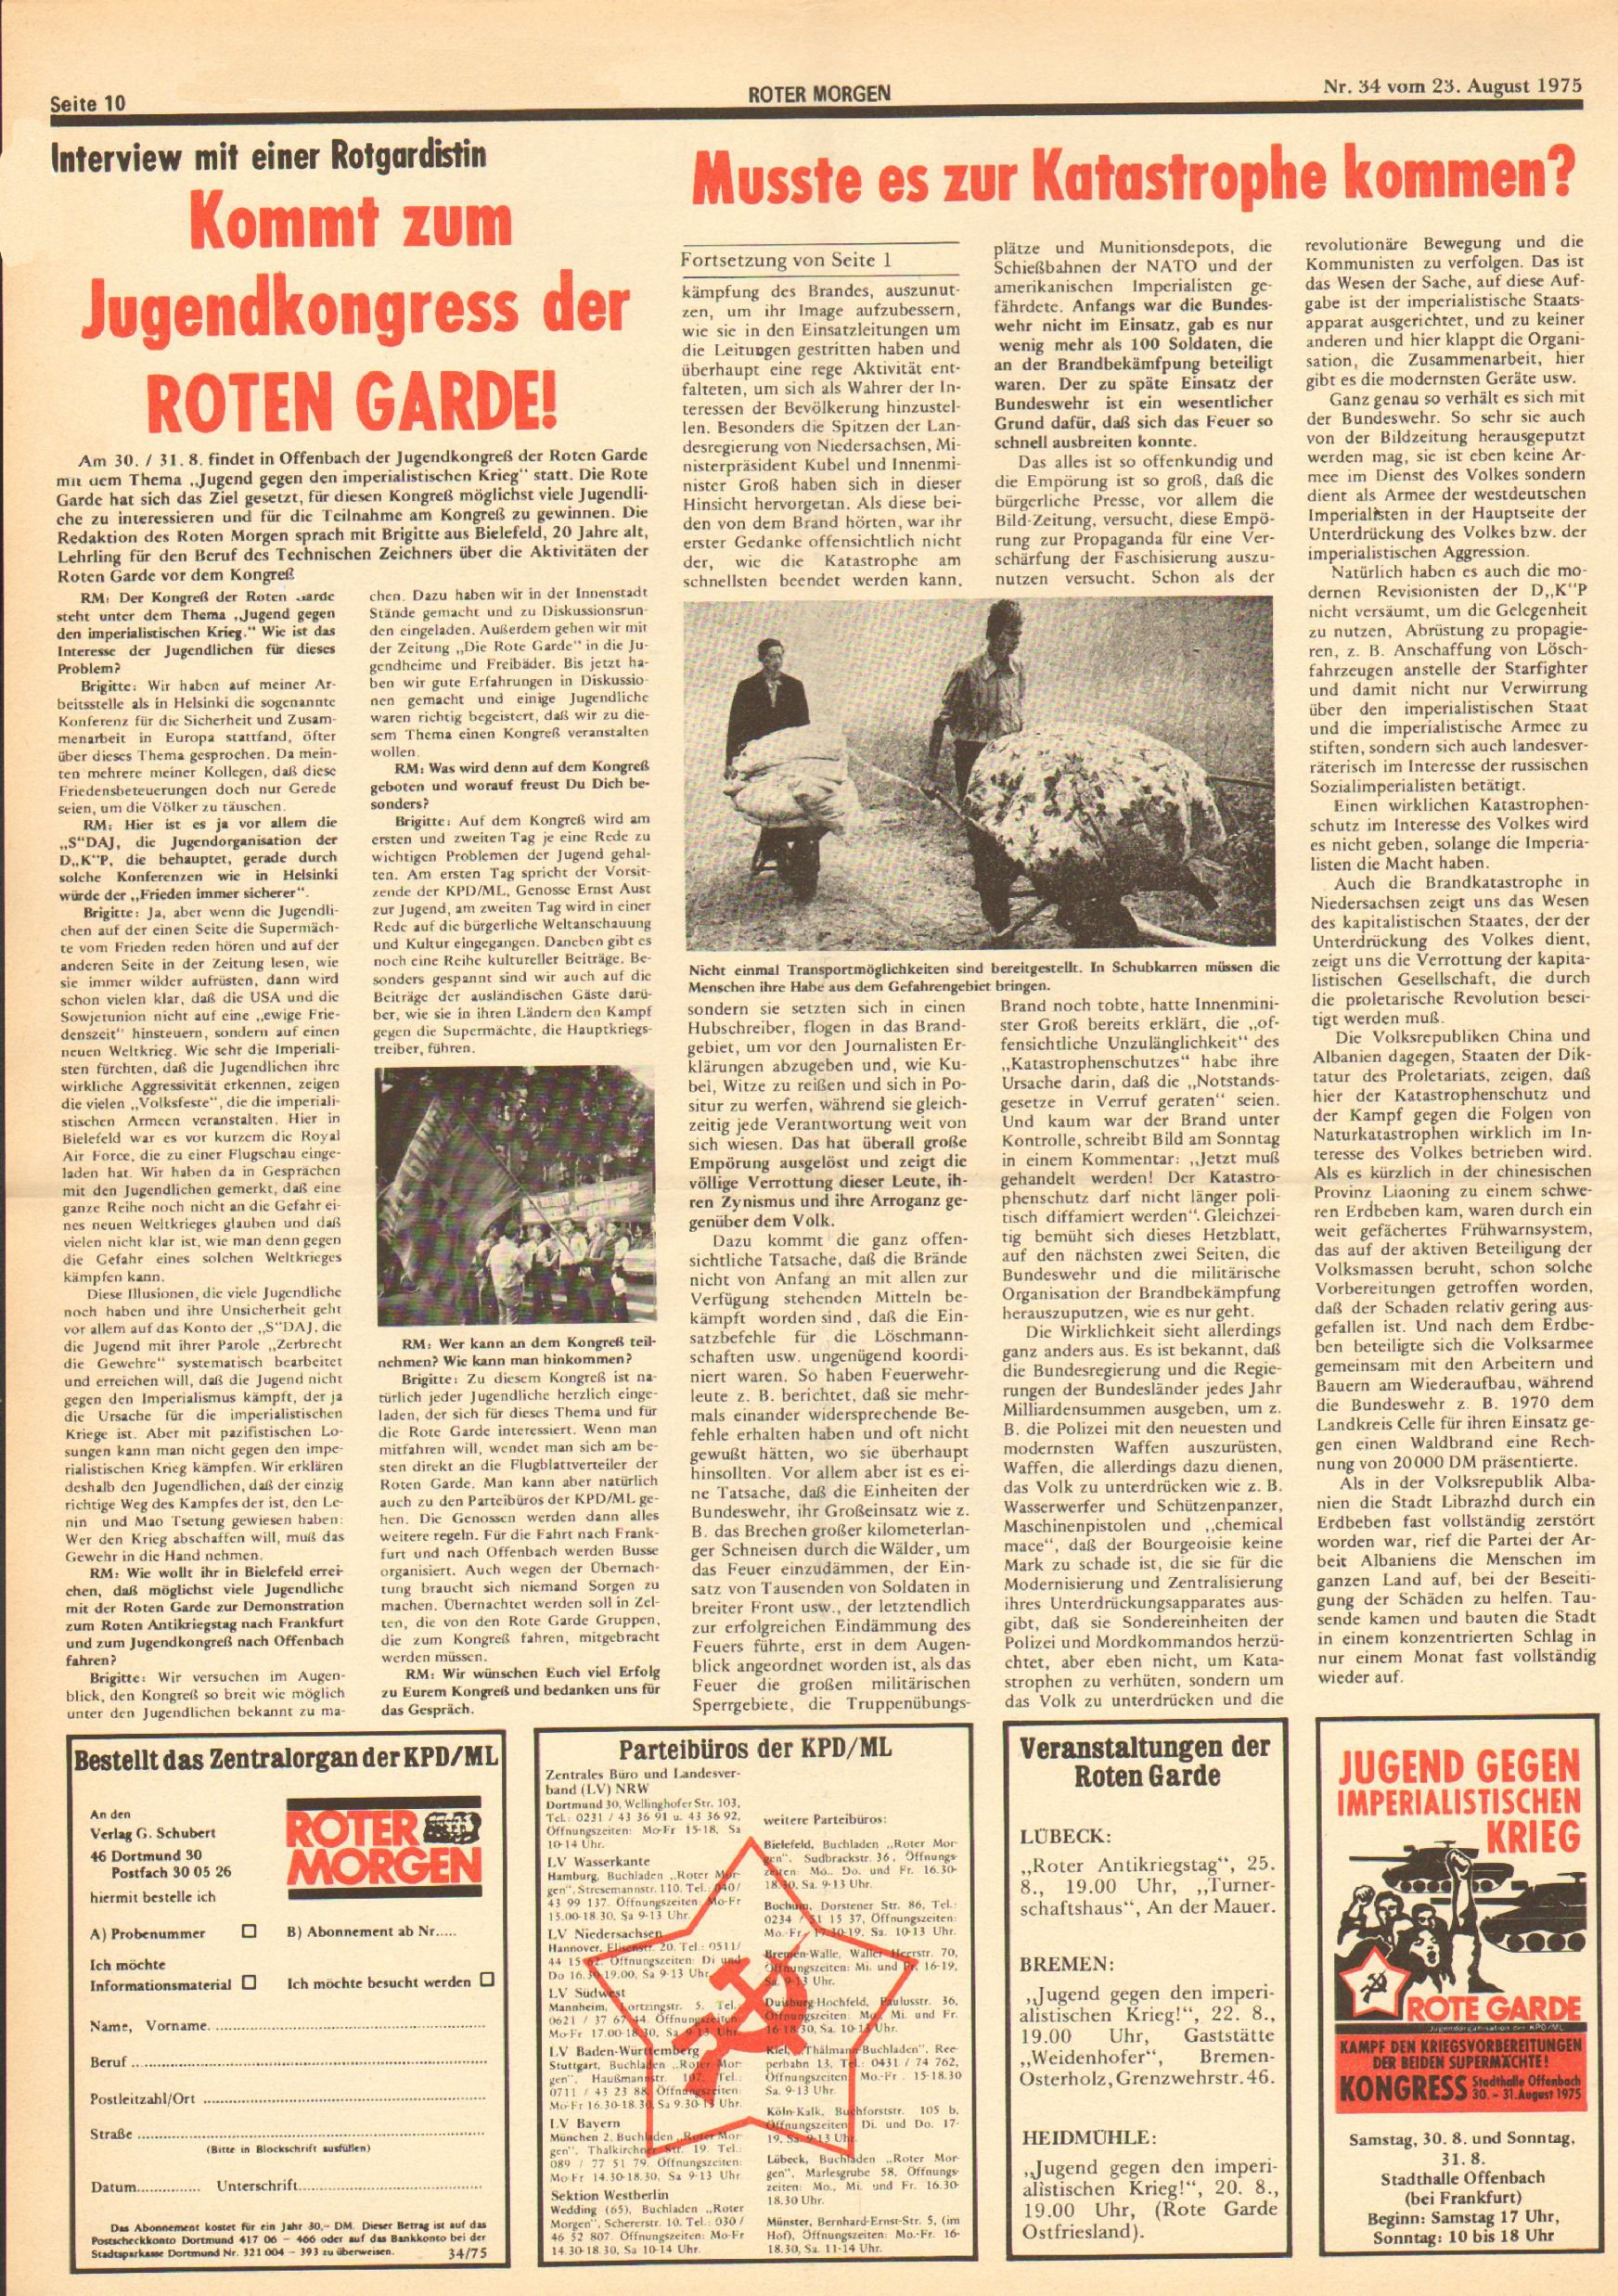 Roter Morgen, 9. Jg., 23. August 1975, Nr. 34, Seite 10